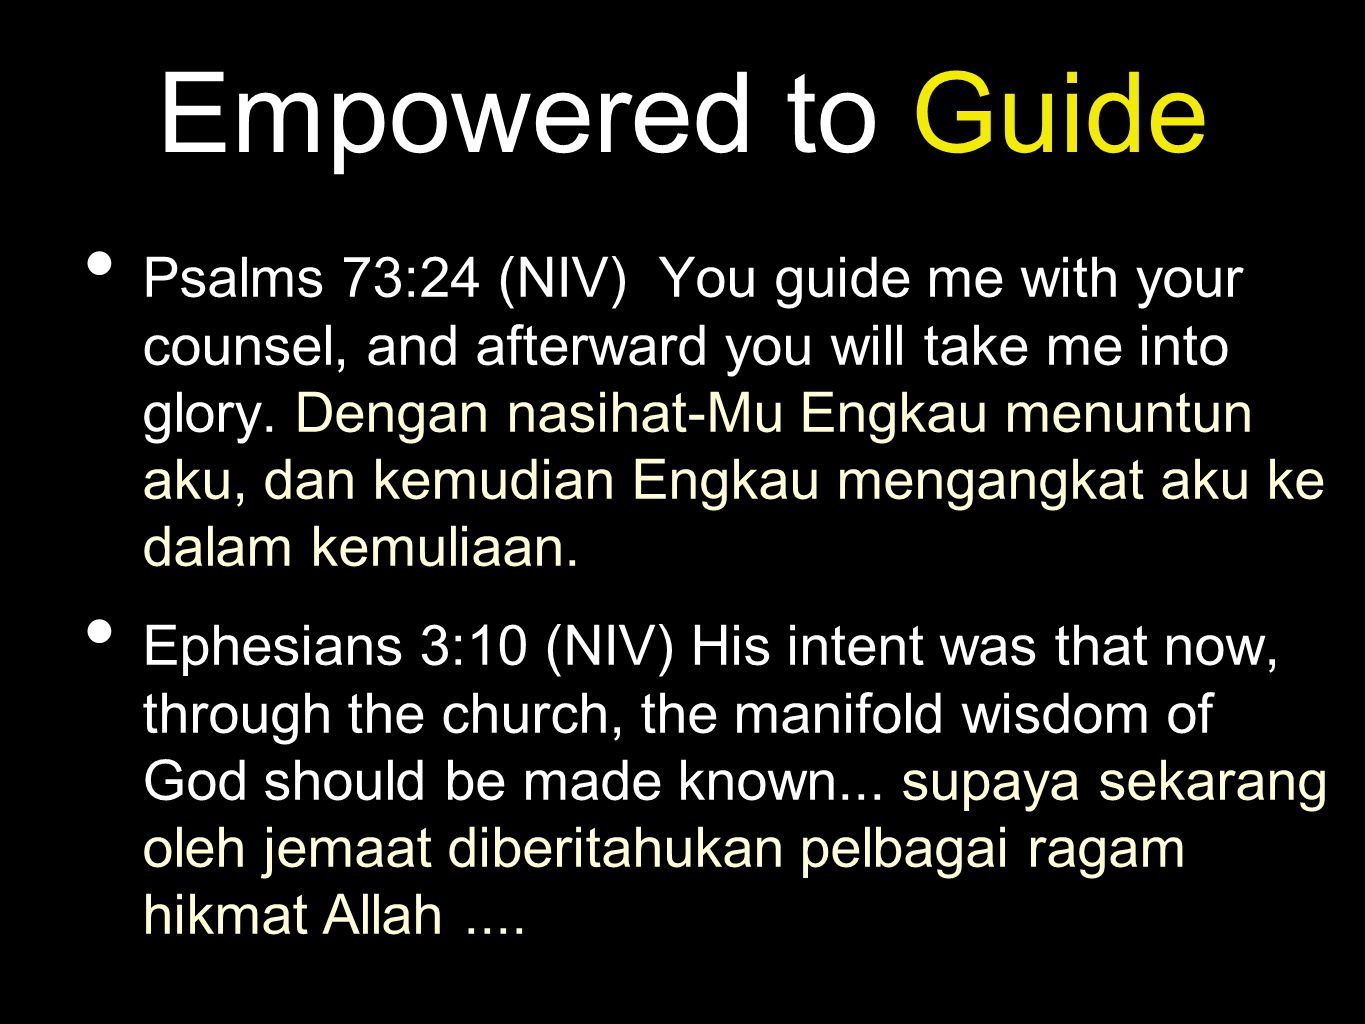 Empowered to Guide • Psalms 73:24 (NIV) You guide me with your counsel, and afterward you will take me into glory.